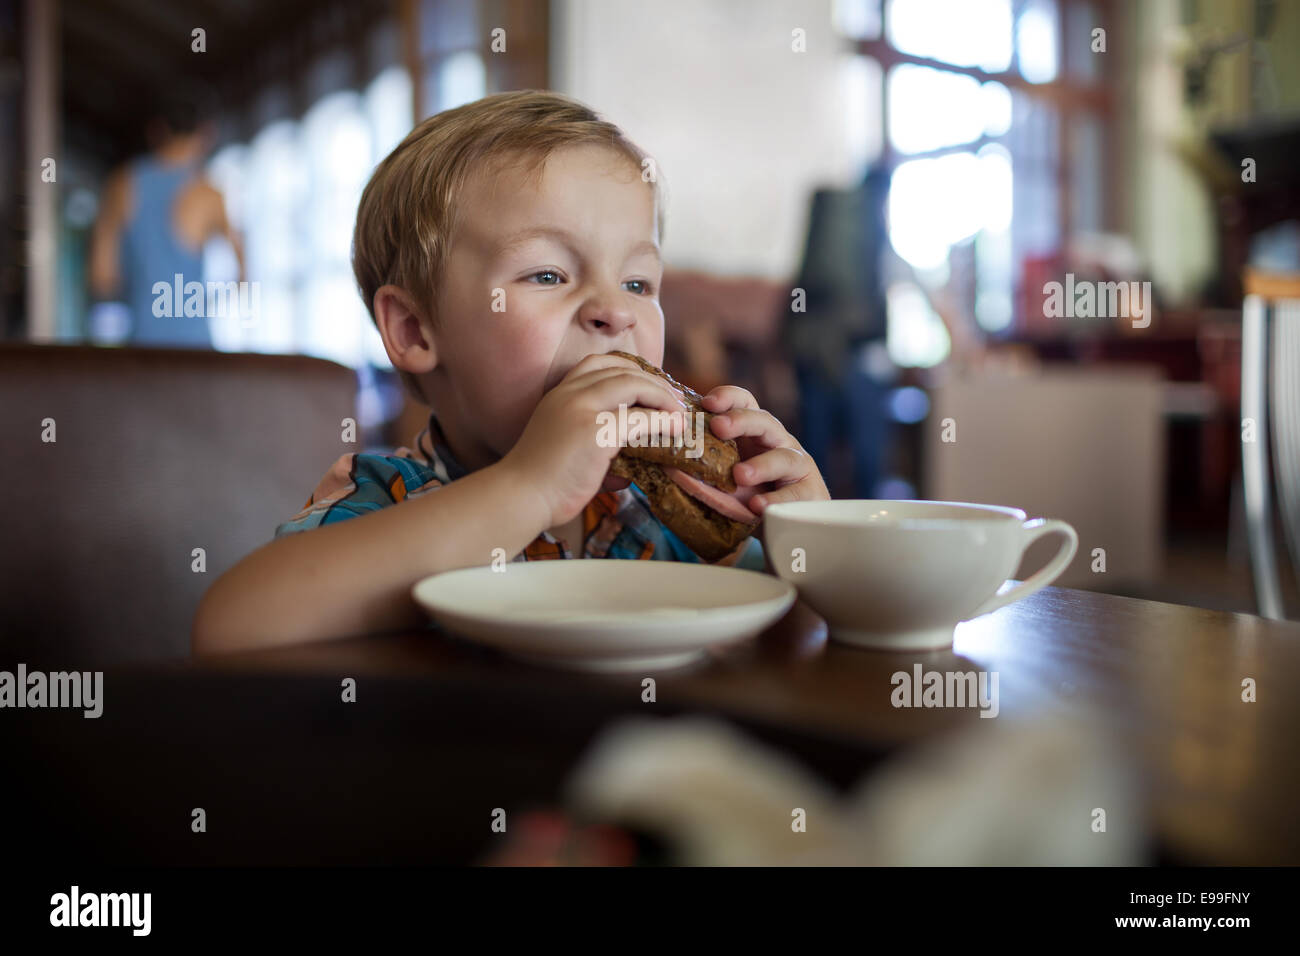 Little boy having sandwich in a cafe - Stock Image